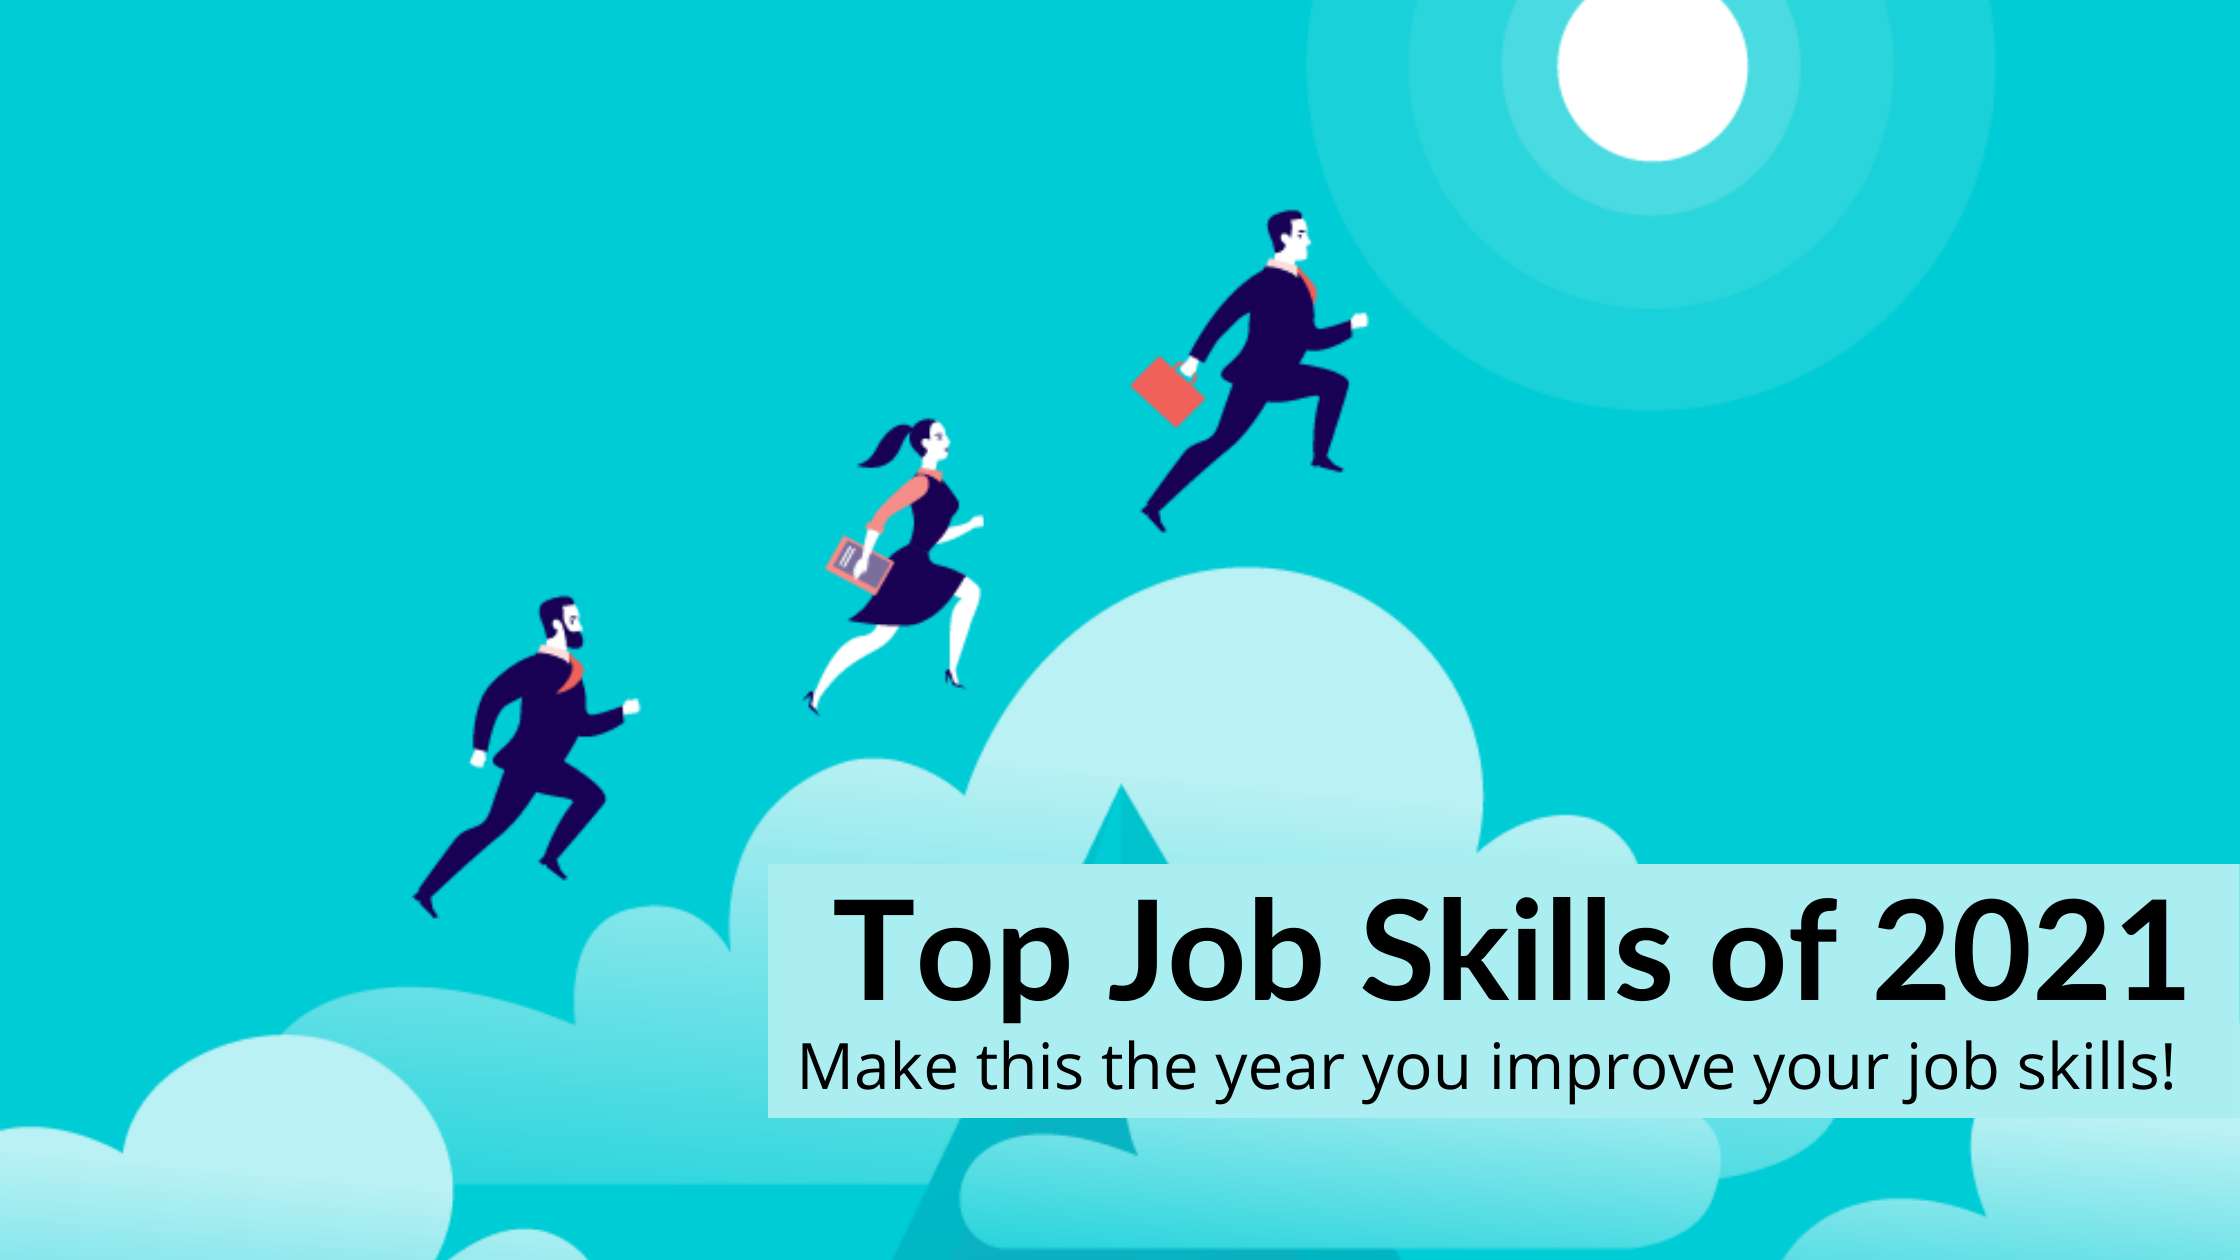 Top Job Skills of 2021